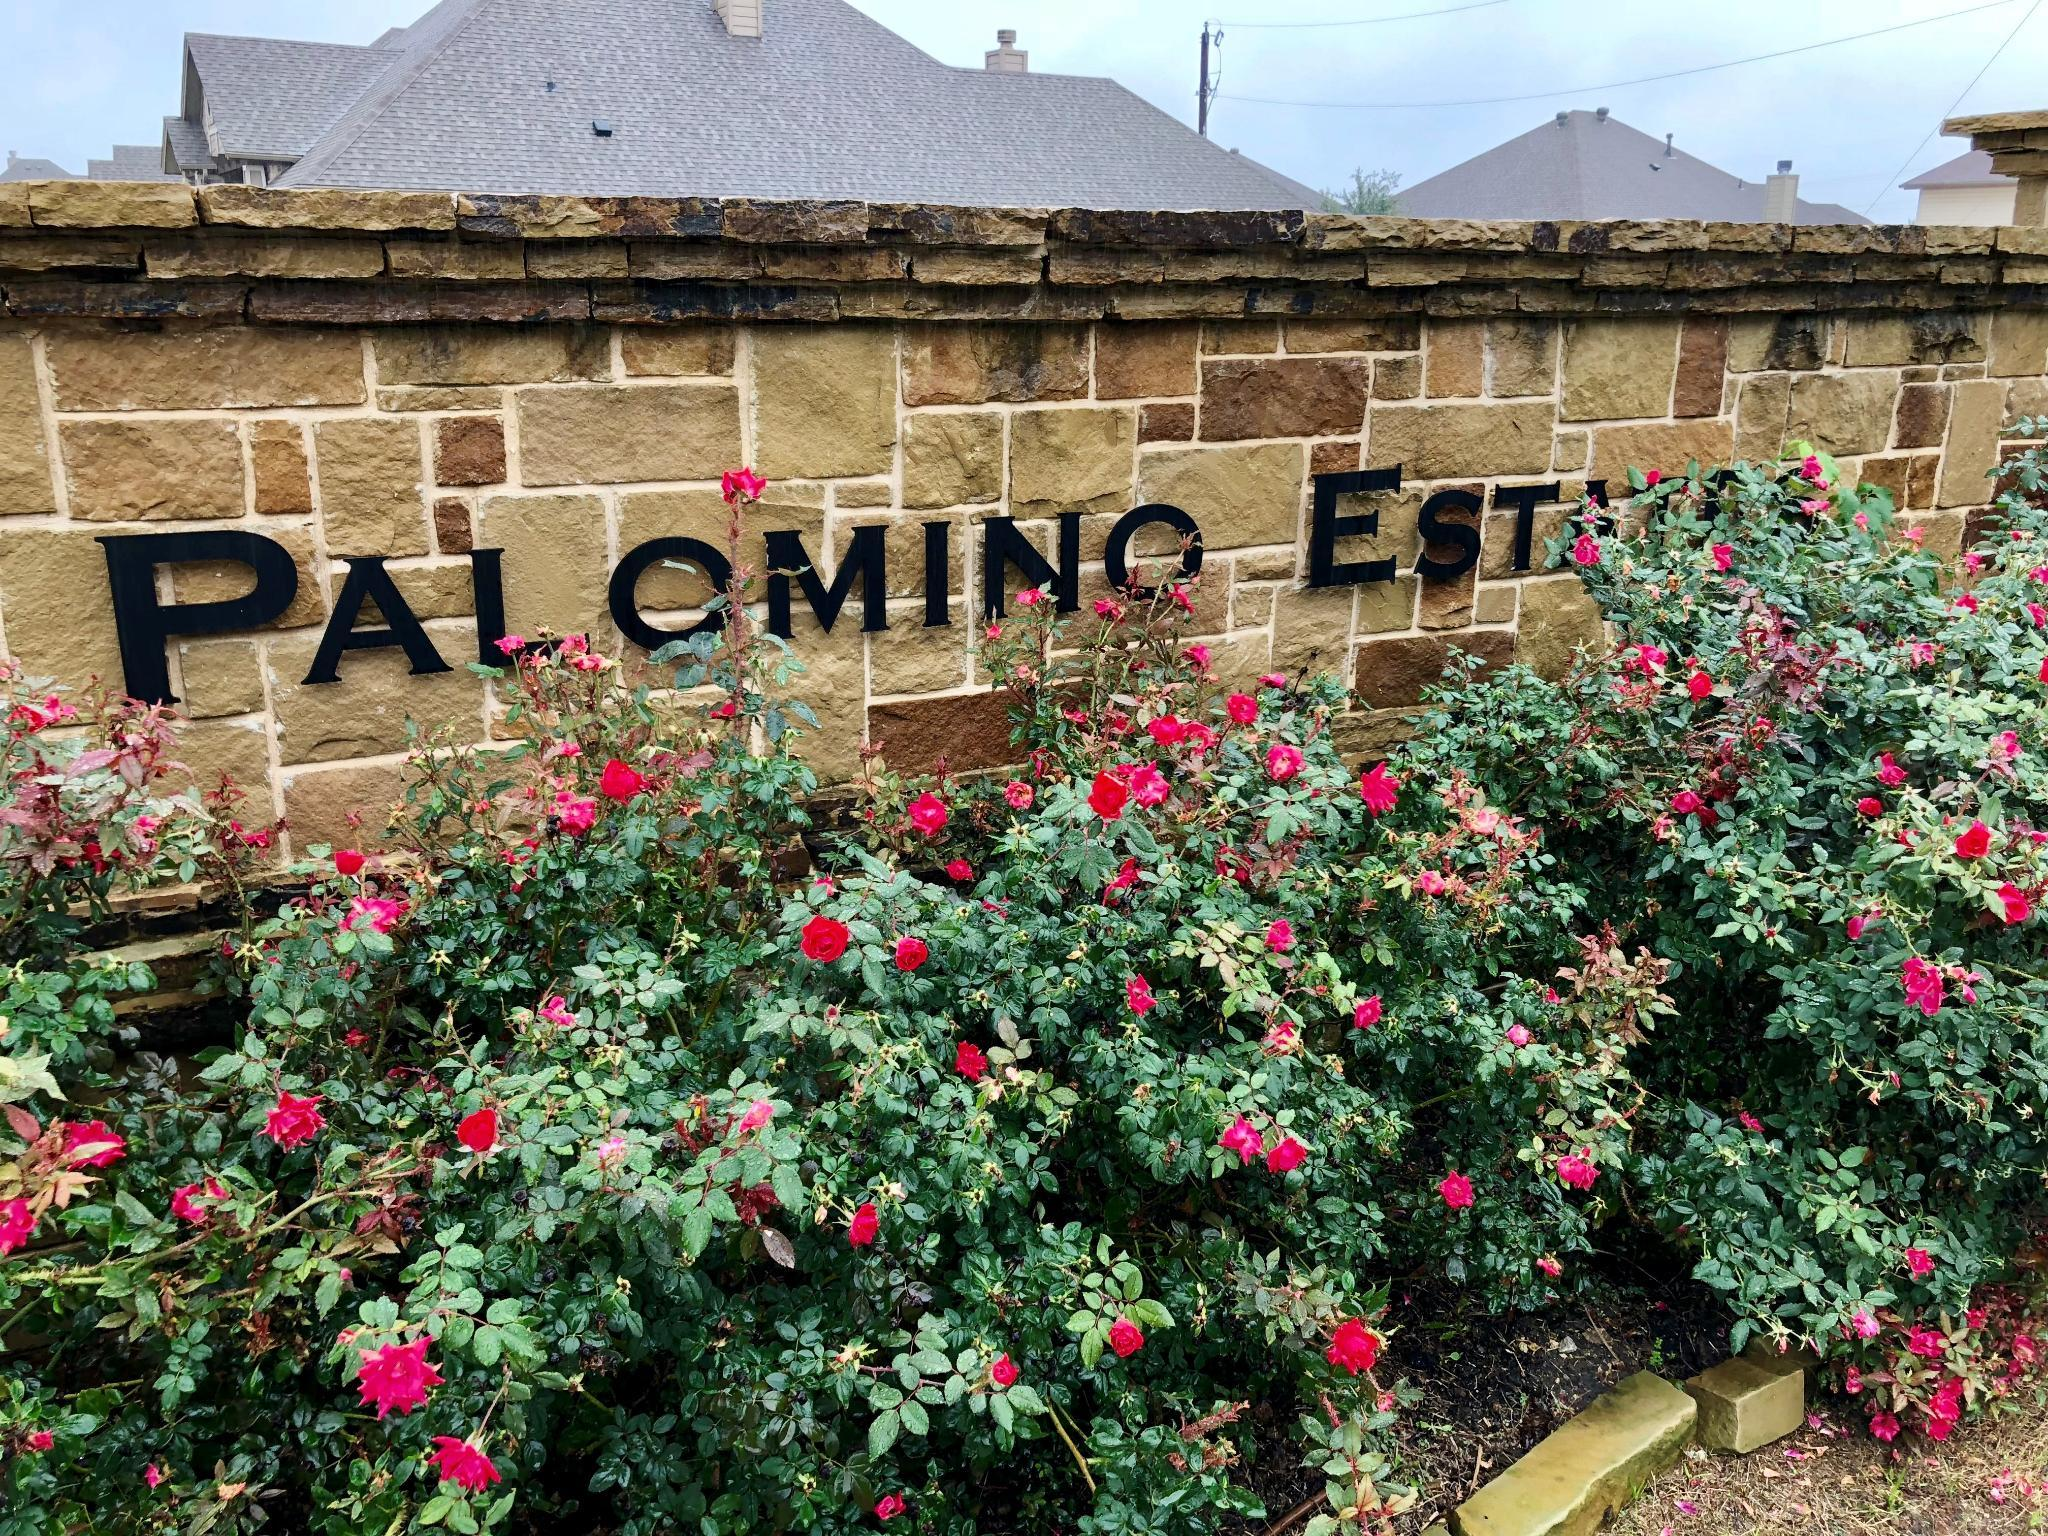 'Palomino Estates' by Sandlin Home in Fort Worth